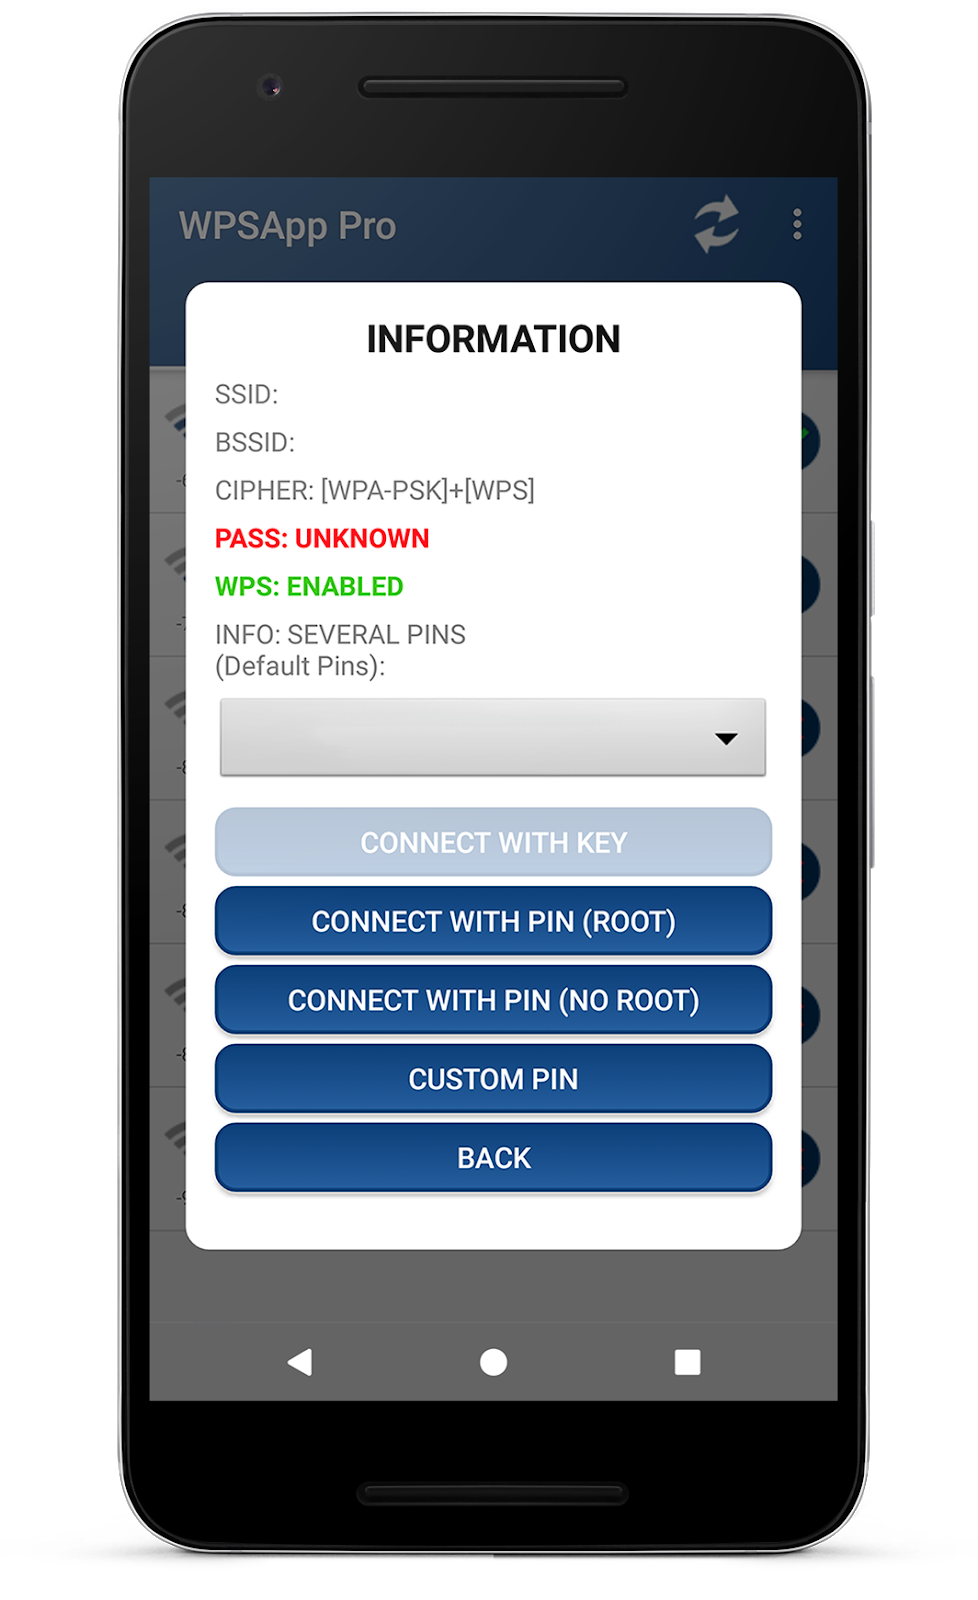 Download WPSApp Pro v1 6 13 [Patched] - Apk For Free - Free